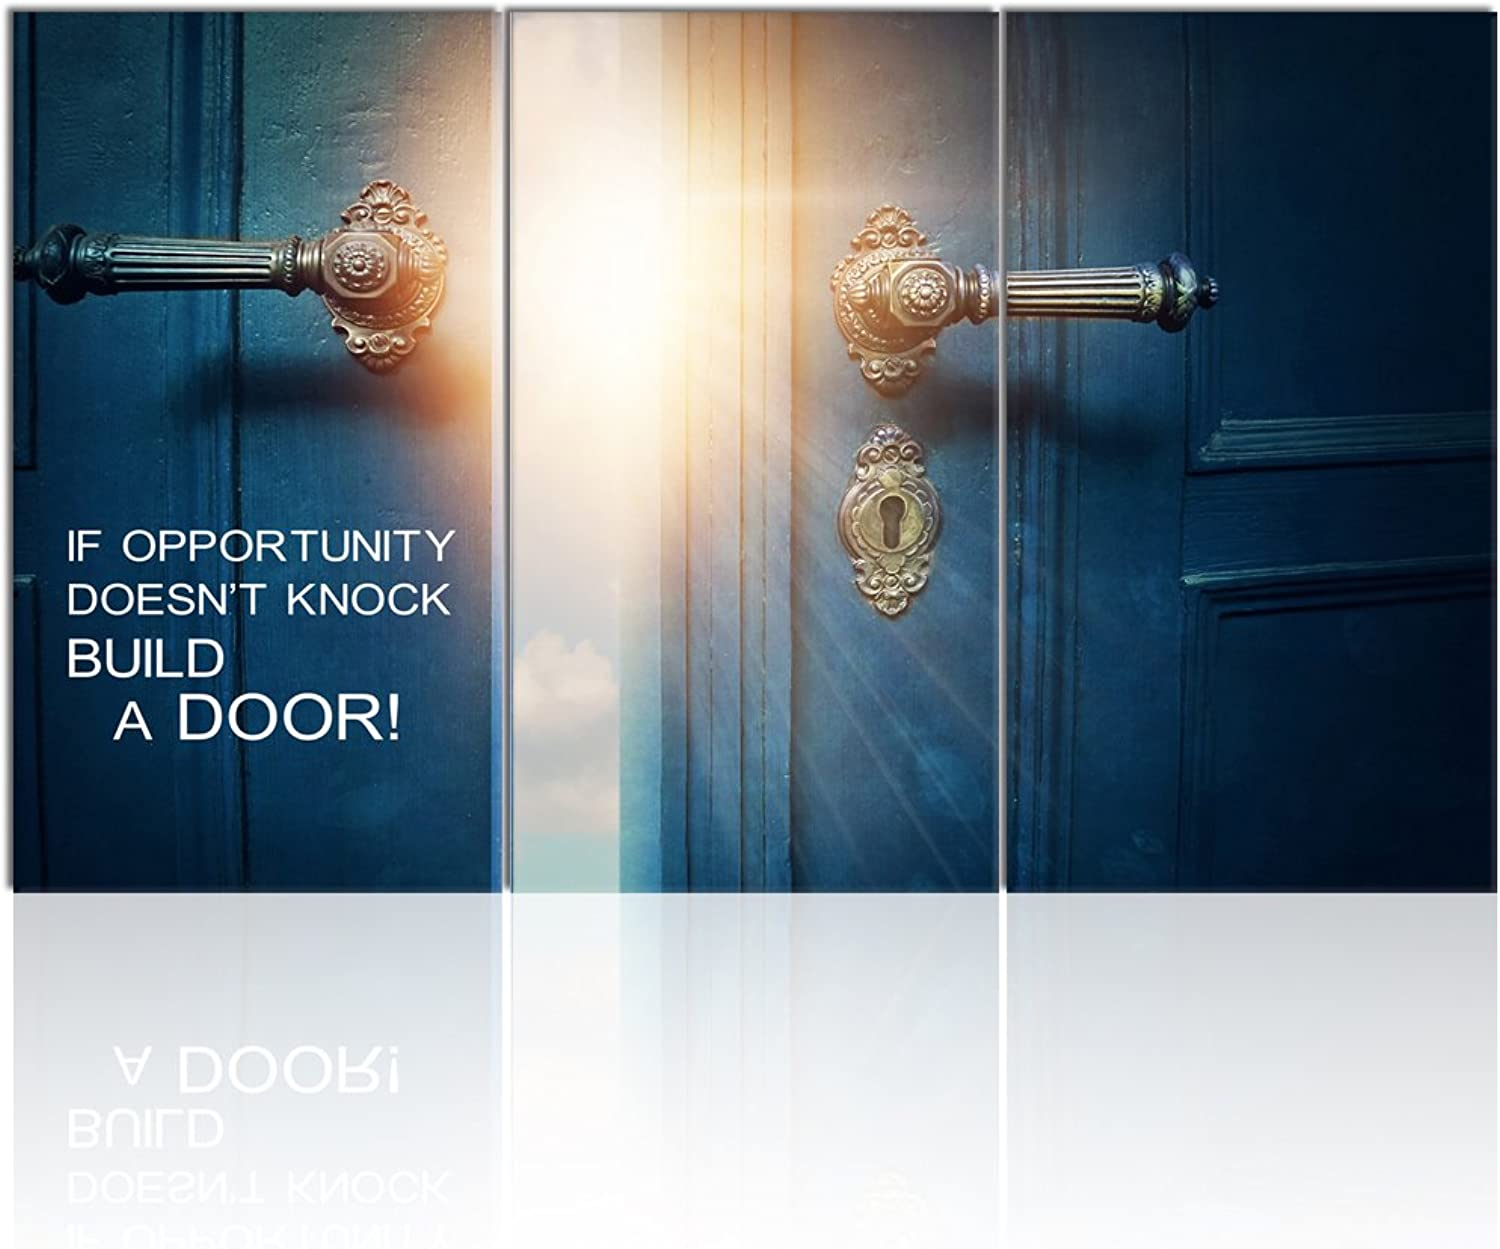 Visual Art Decor Success Inspiration Quote Canvas Wall Art If Opportunity Doesn't Knock Build a Door Motivation Motto Framed Giclee Prints Home Office Decoration (W-60 xH-36)